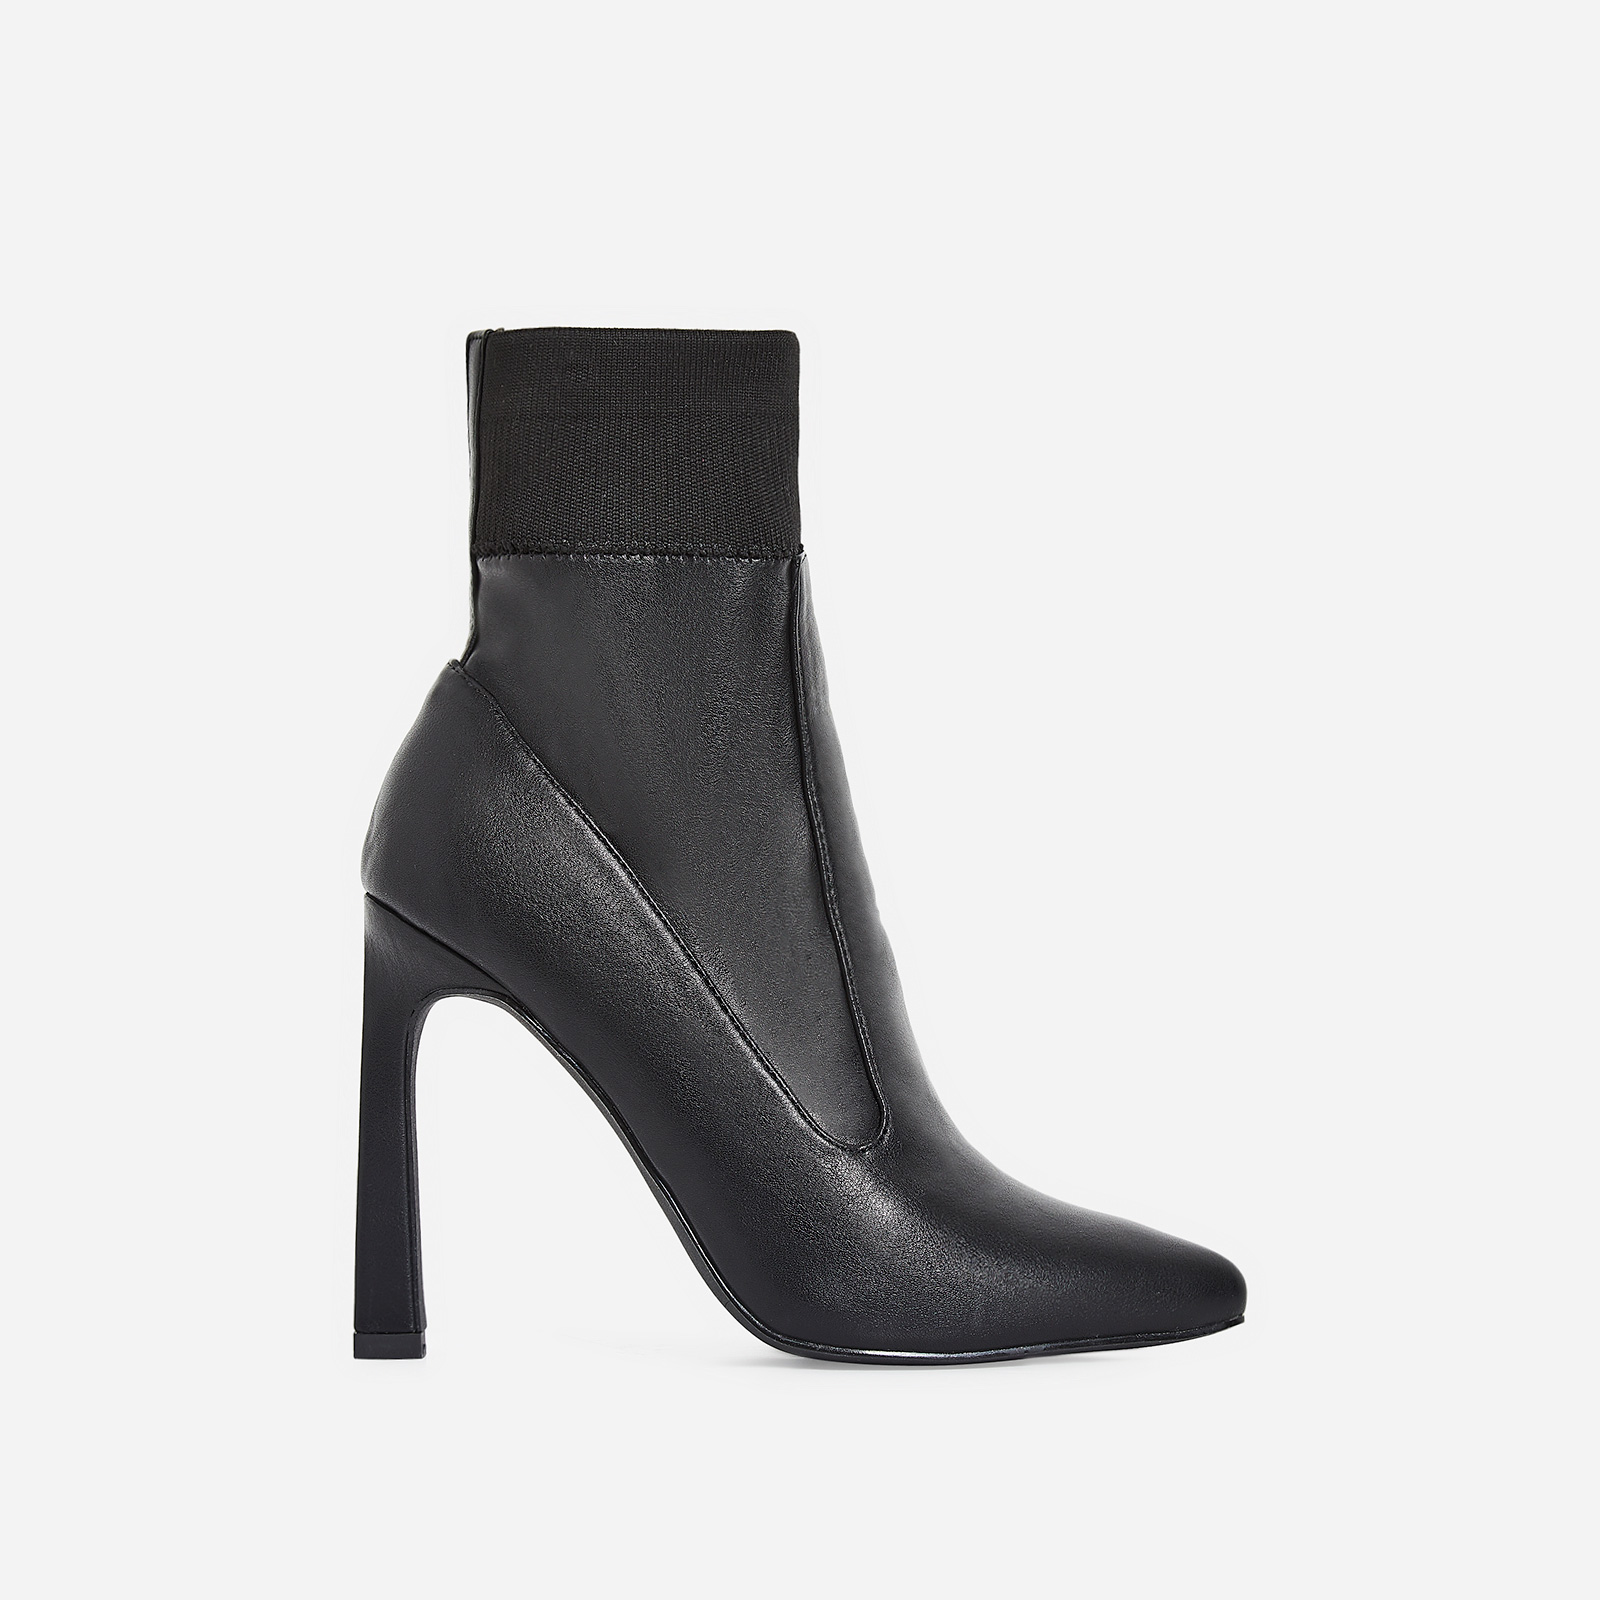 Elaina Flared Stiletto Heel Ankle Sock Boot In Black Faux Leather